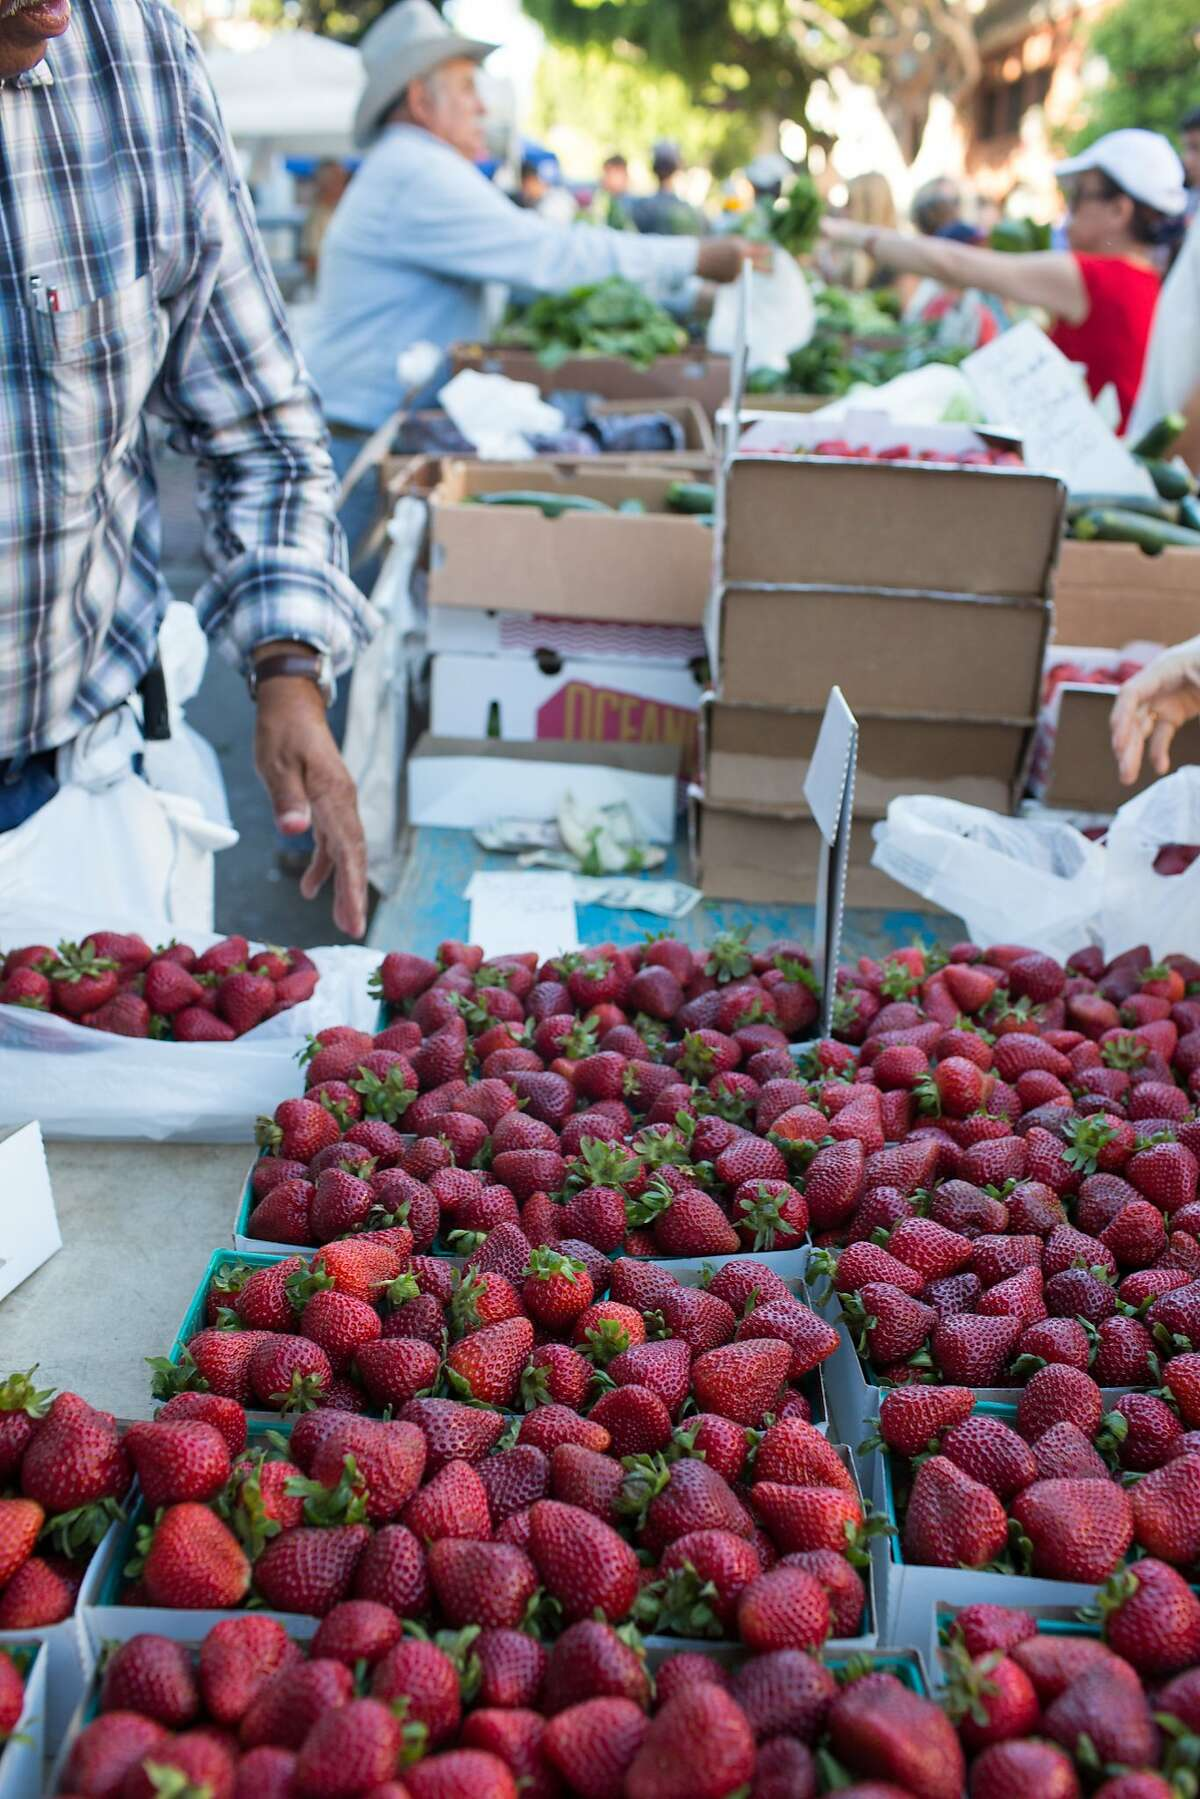 These are some of the fruits found at the Thursday night market in San Luis Obispo, Calif., Thursday July 16, 20015. (photo by Randi Lynn Beach)